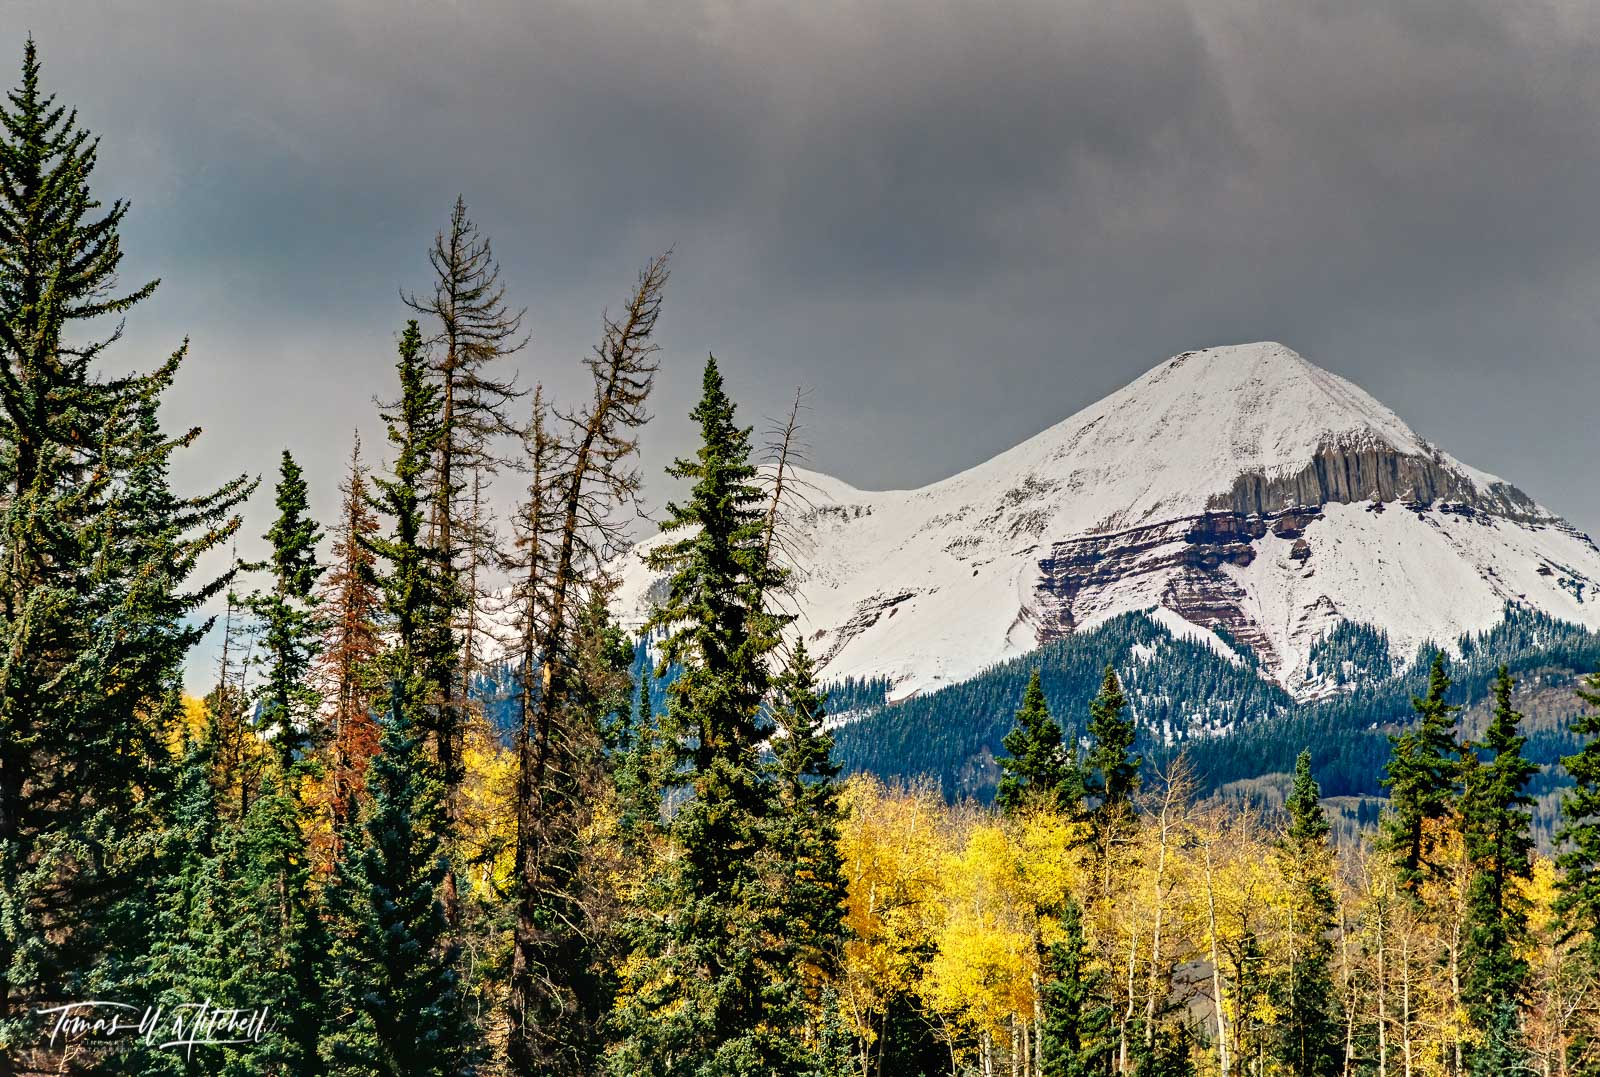 colorado, engineer mountain, film, limited edition, fine art, prints, photograph, nikon, stormy clouds, snowy mountain, sunlight, aspen, trees, evergreen, sky, mood, winter, autumn, photo